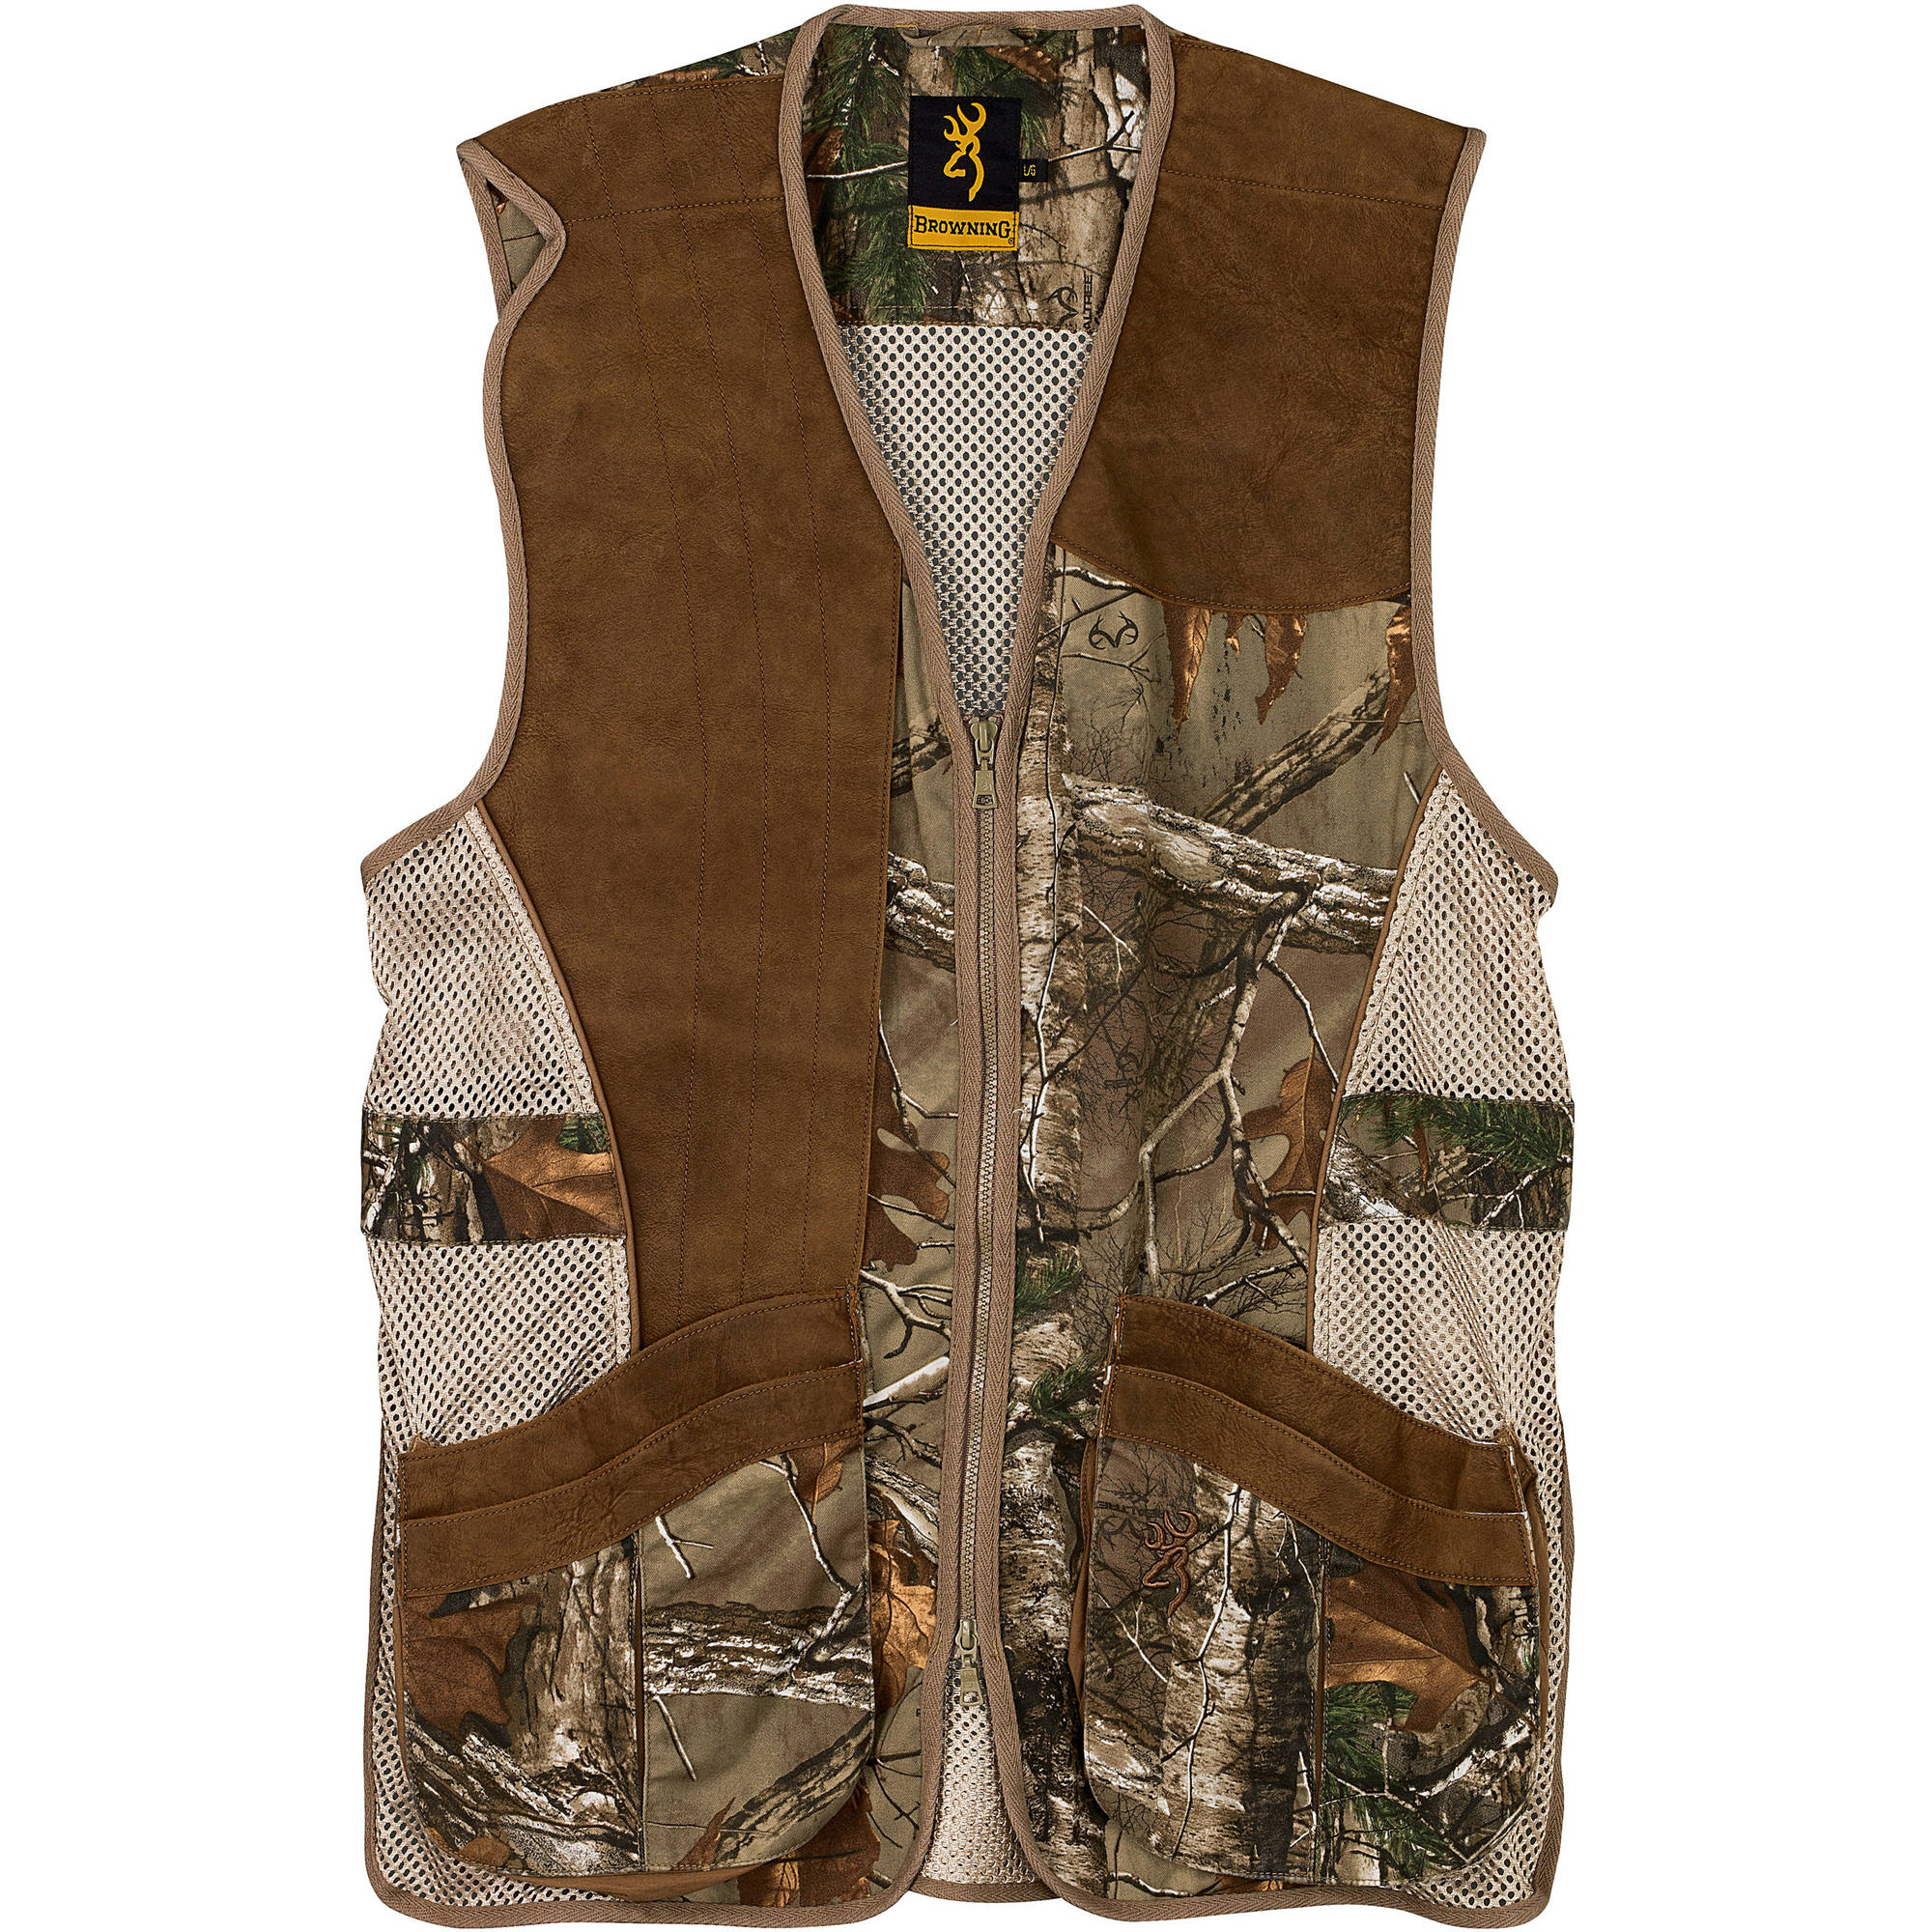 Browning* Leather Shooting Vest (L)- RTX/Leather